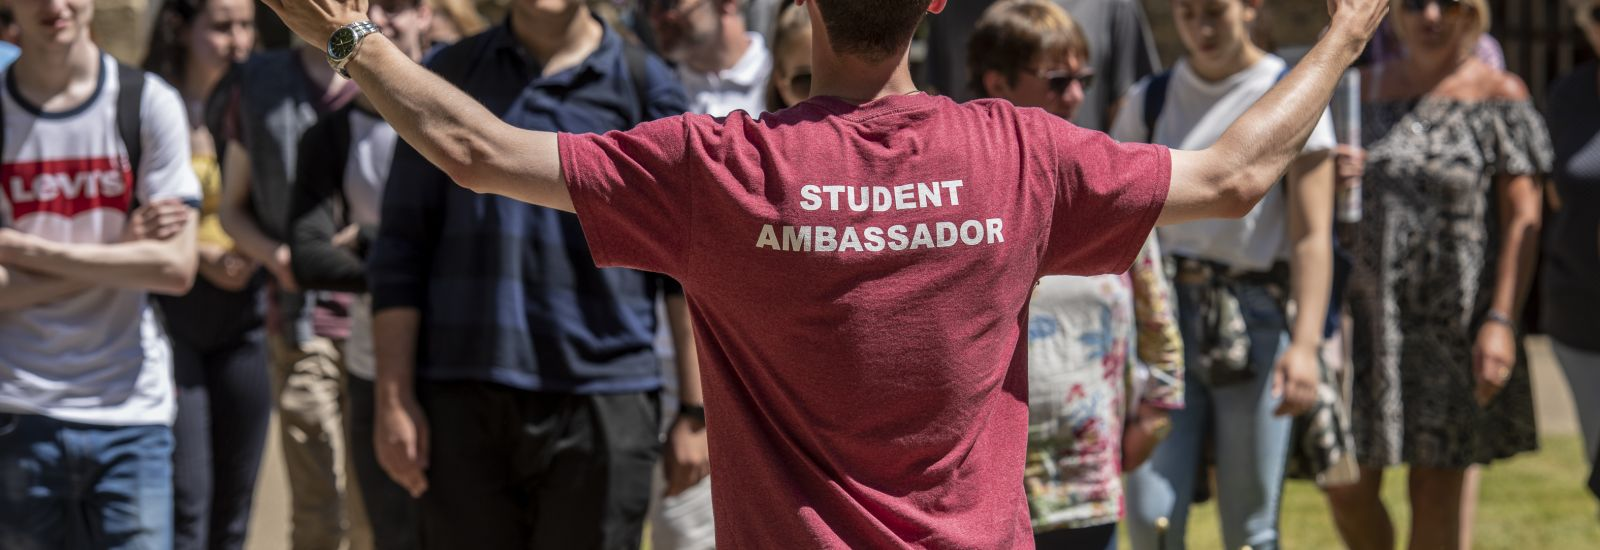 Student ambassador with his arms outstretched